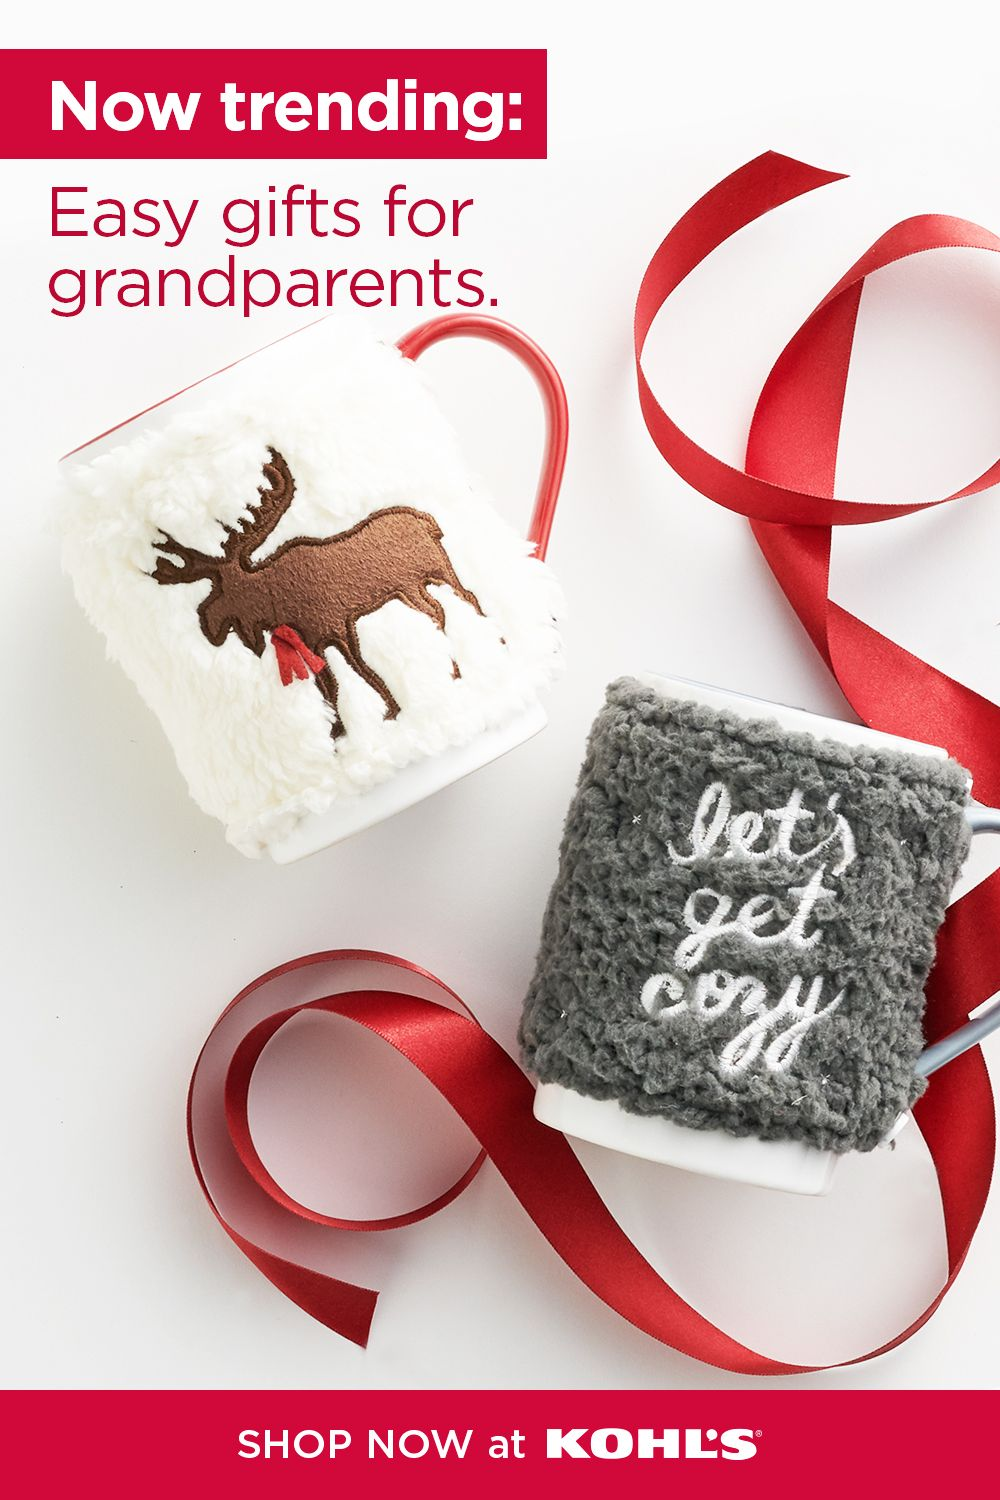 Now Trending Find Gifts For Grandparents At Kohl S Not Sure What To Give Grandma Or Grandpa This Year You Winter Gift Basket Easy Gifts Gift Baskets For Men